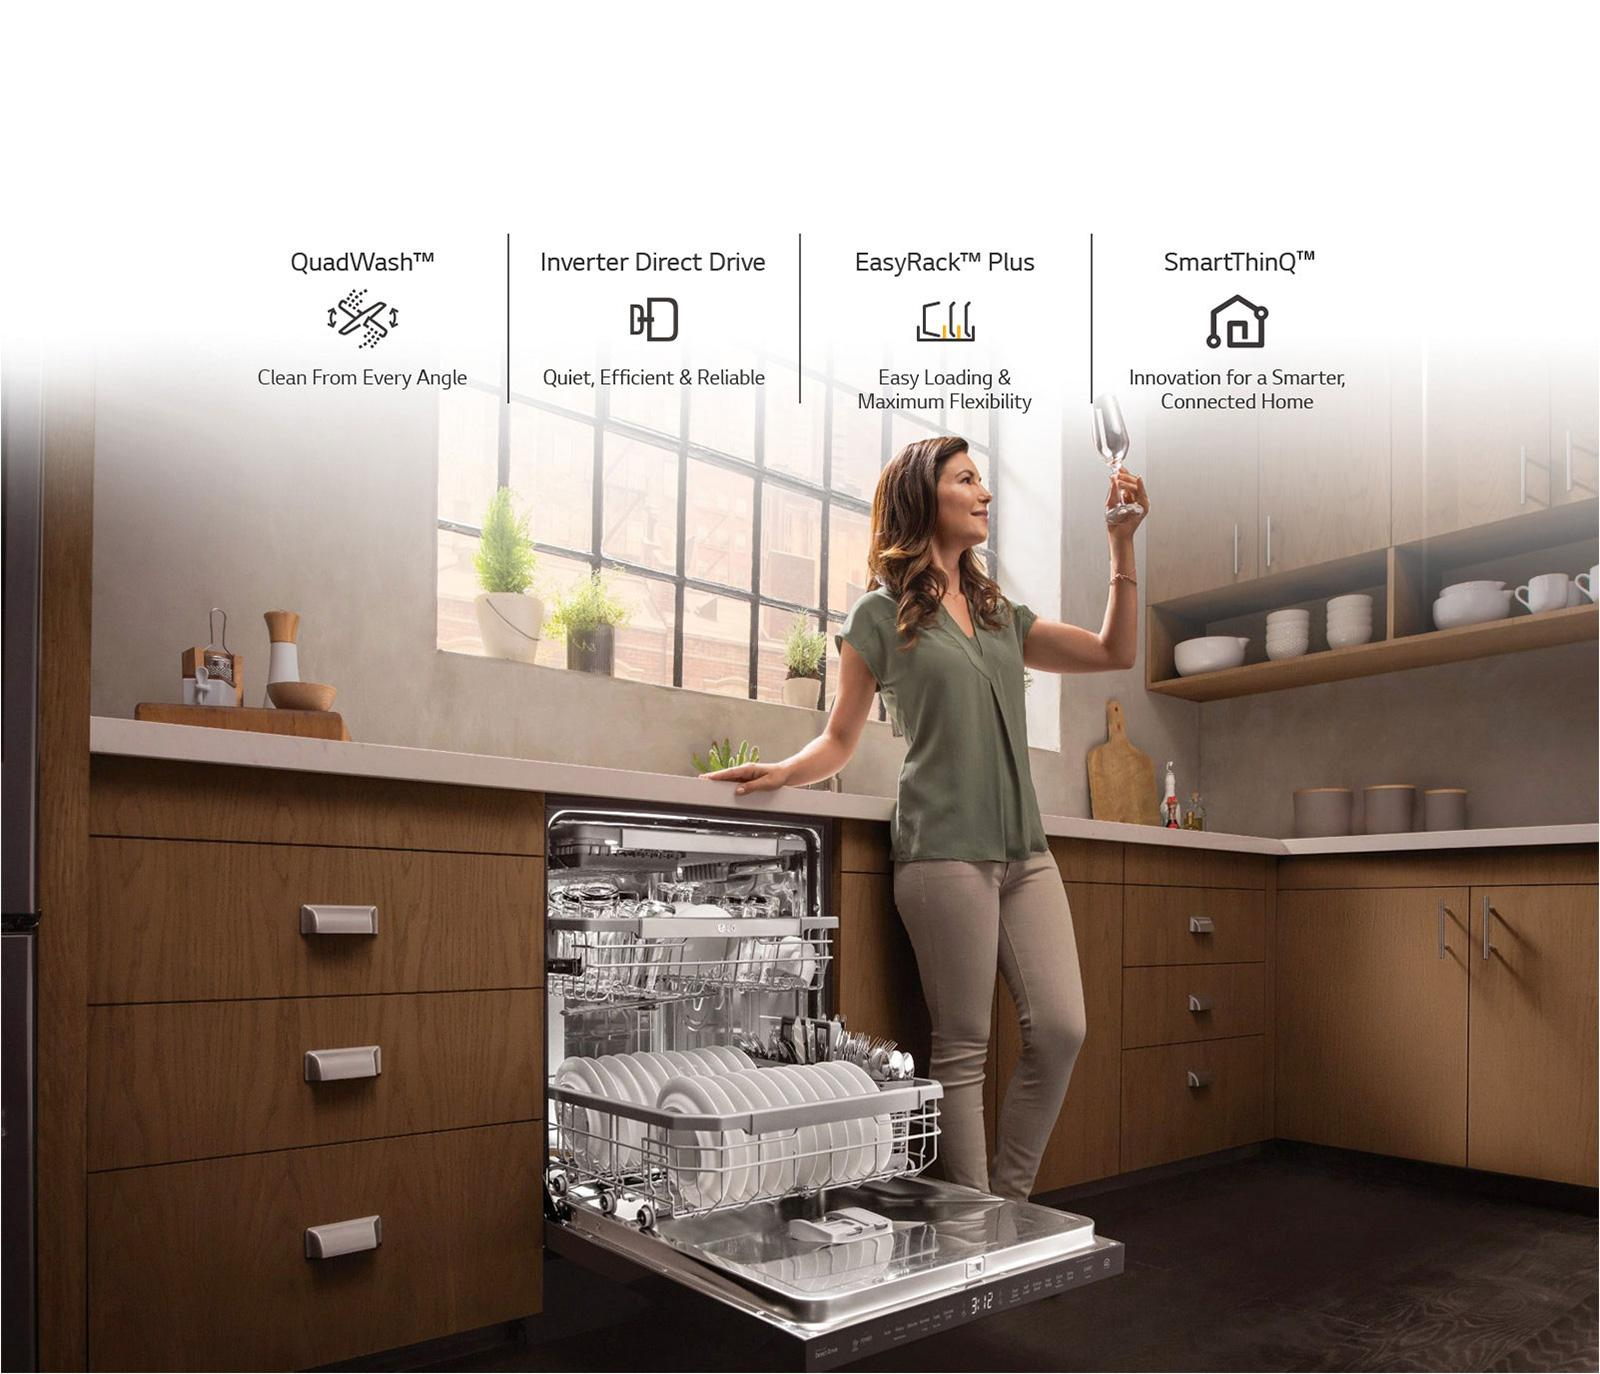 Four Reasons to Buy an LG Dishwasher